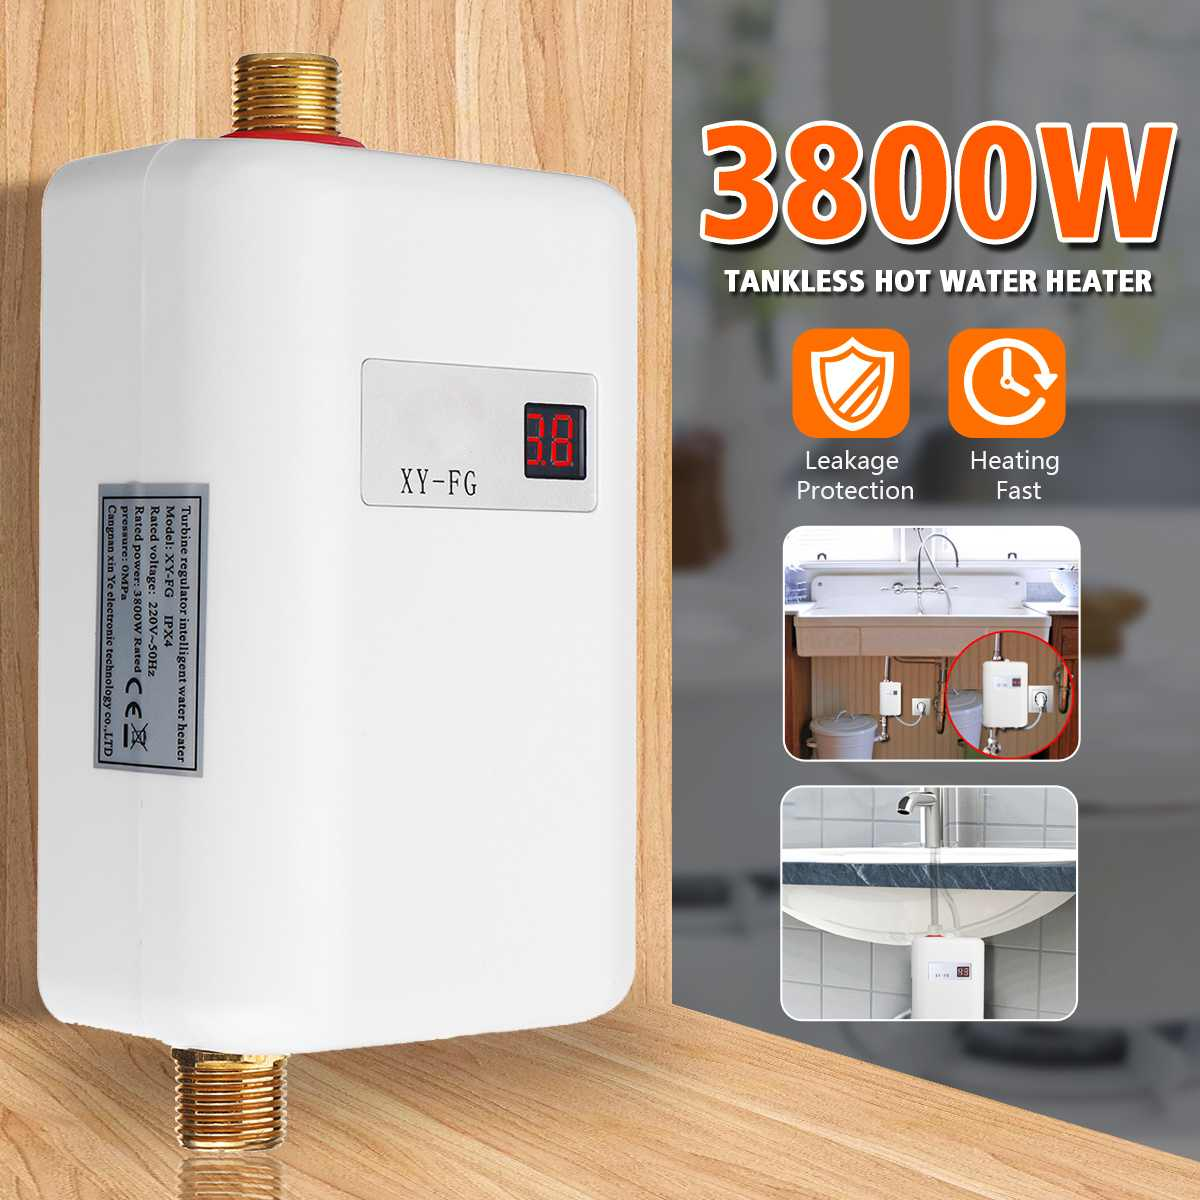 110/220V 3800W Tankless Electric Water Heater Bathroom Kitchen Instant Water Heater Temperature Display Heating Shower Universal